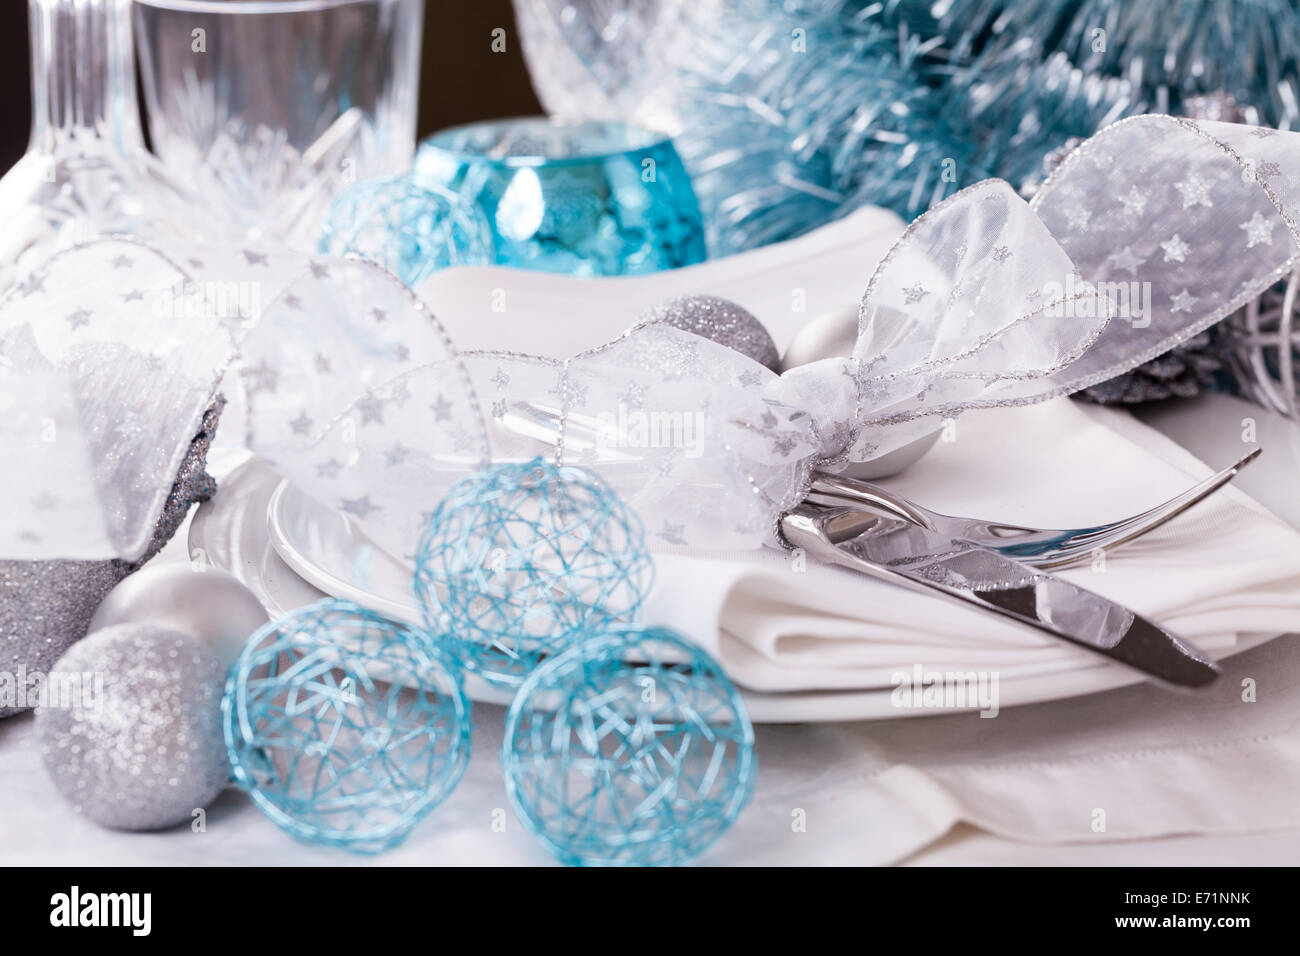 Stylish blue and silver Christmas table setting with a pretty translucent bow on white dinnerware with & Stylish Blue Silver Christmas Table Stock Photos u0026 Stylish Blue ...